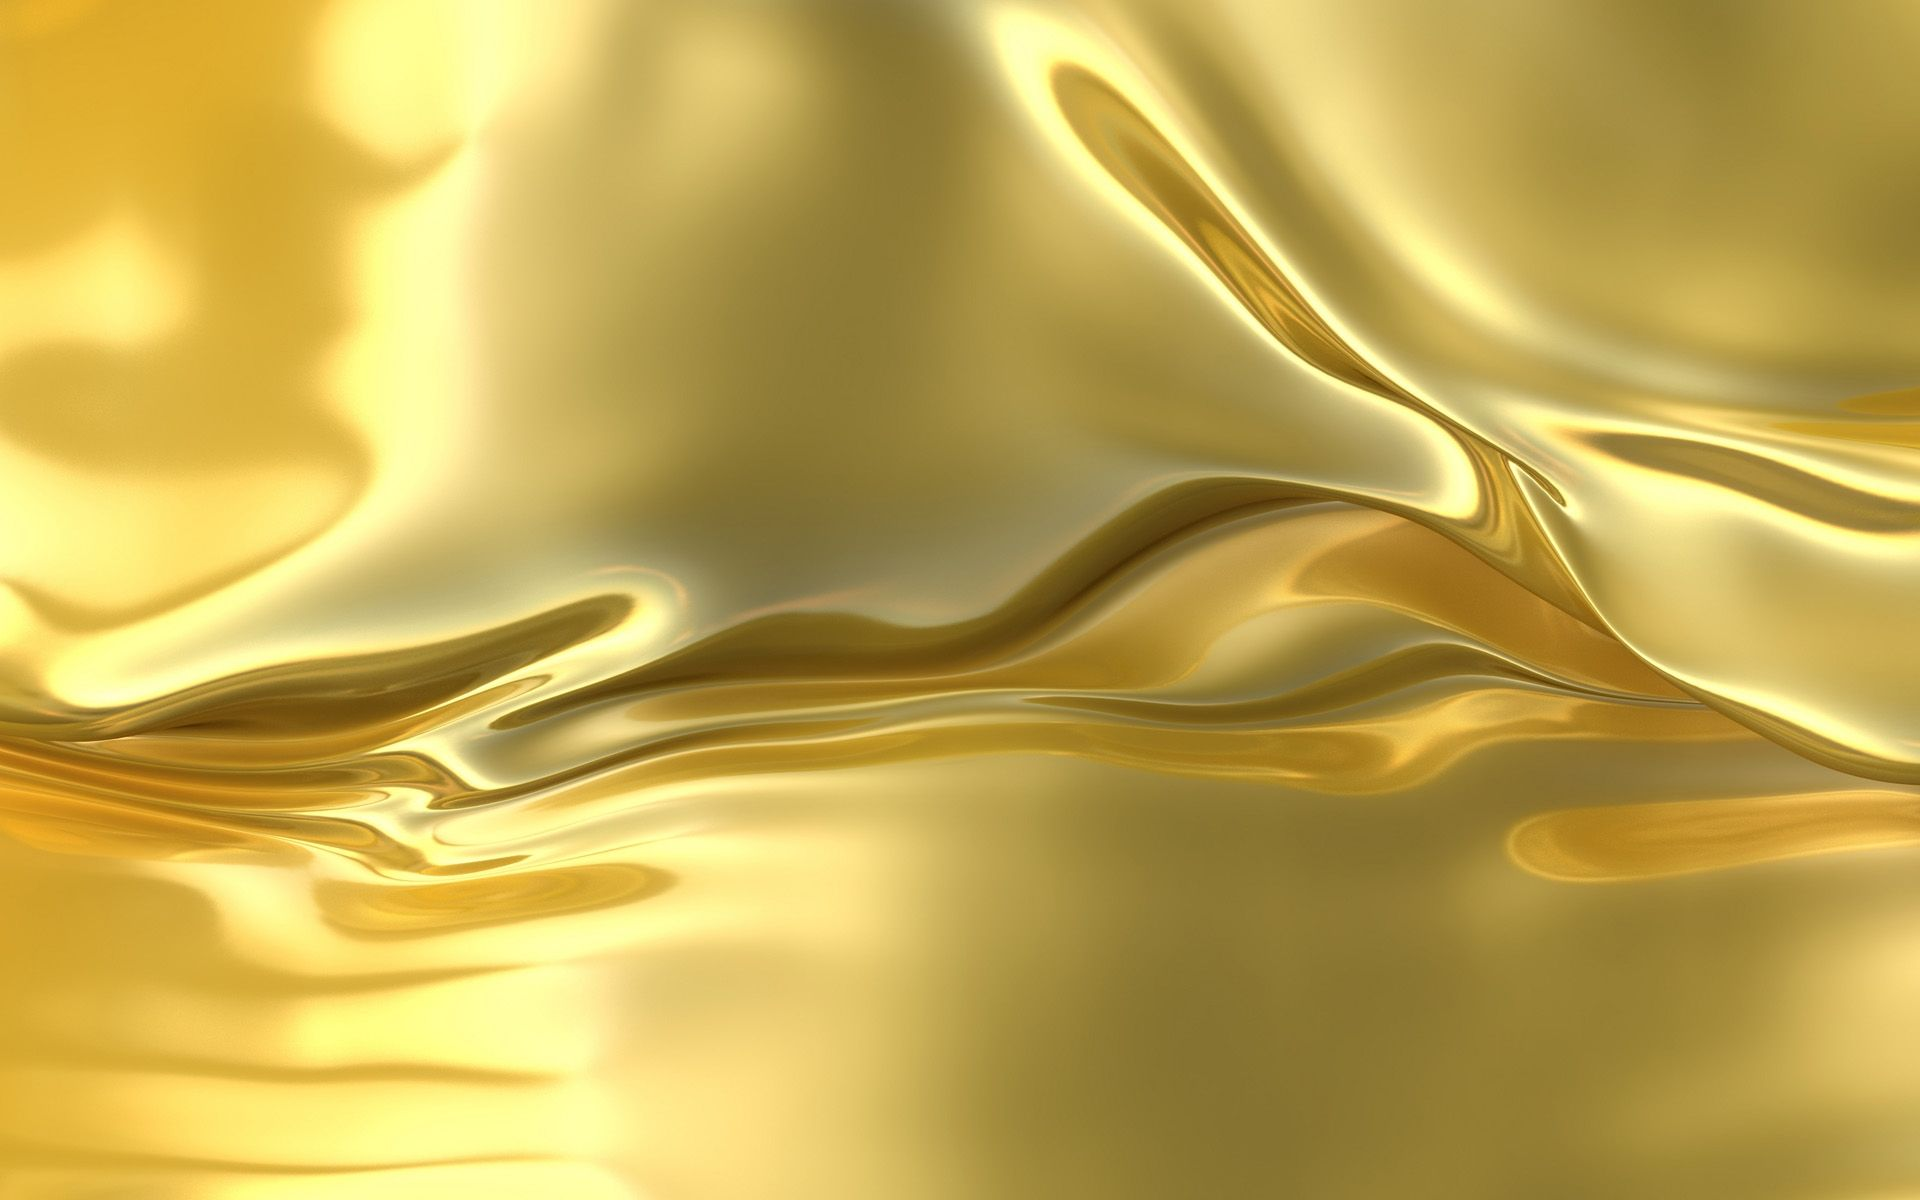 Silver And Gold Wallpaper Wallpapersafari Gold Abstract Wallpaper Gold Wallpaper Gold Textured Wallpaper